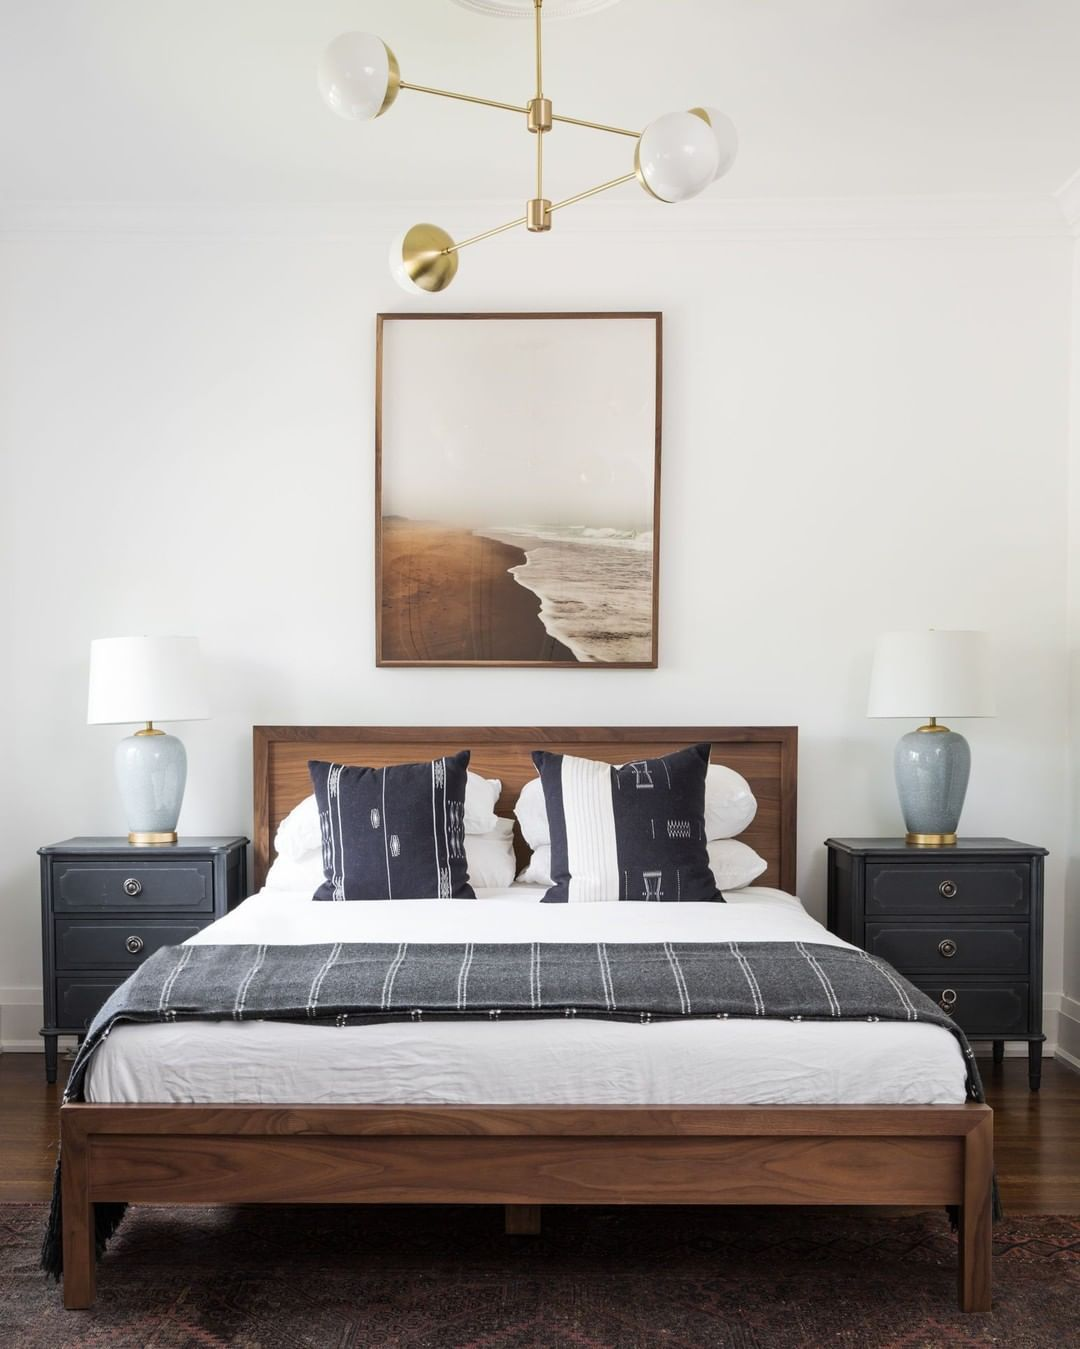 Bedroom with light fixture above bed